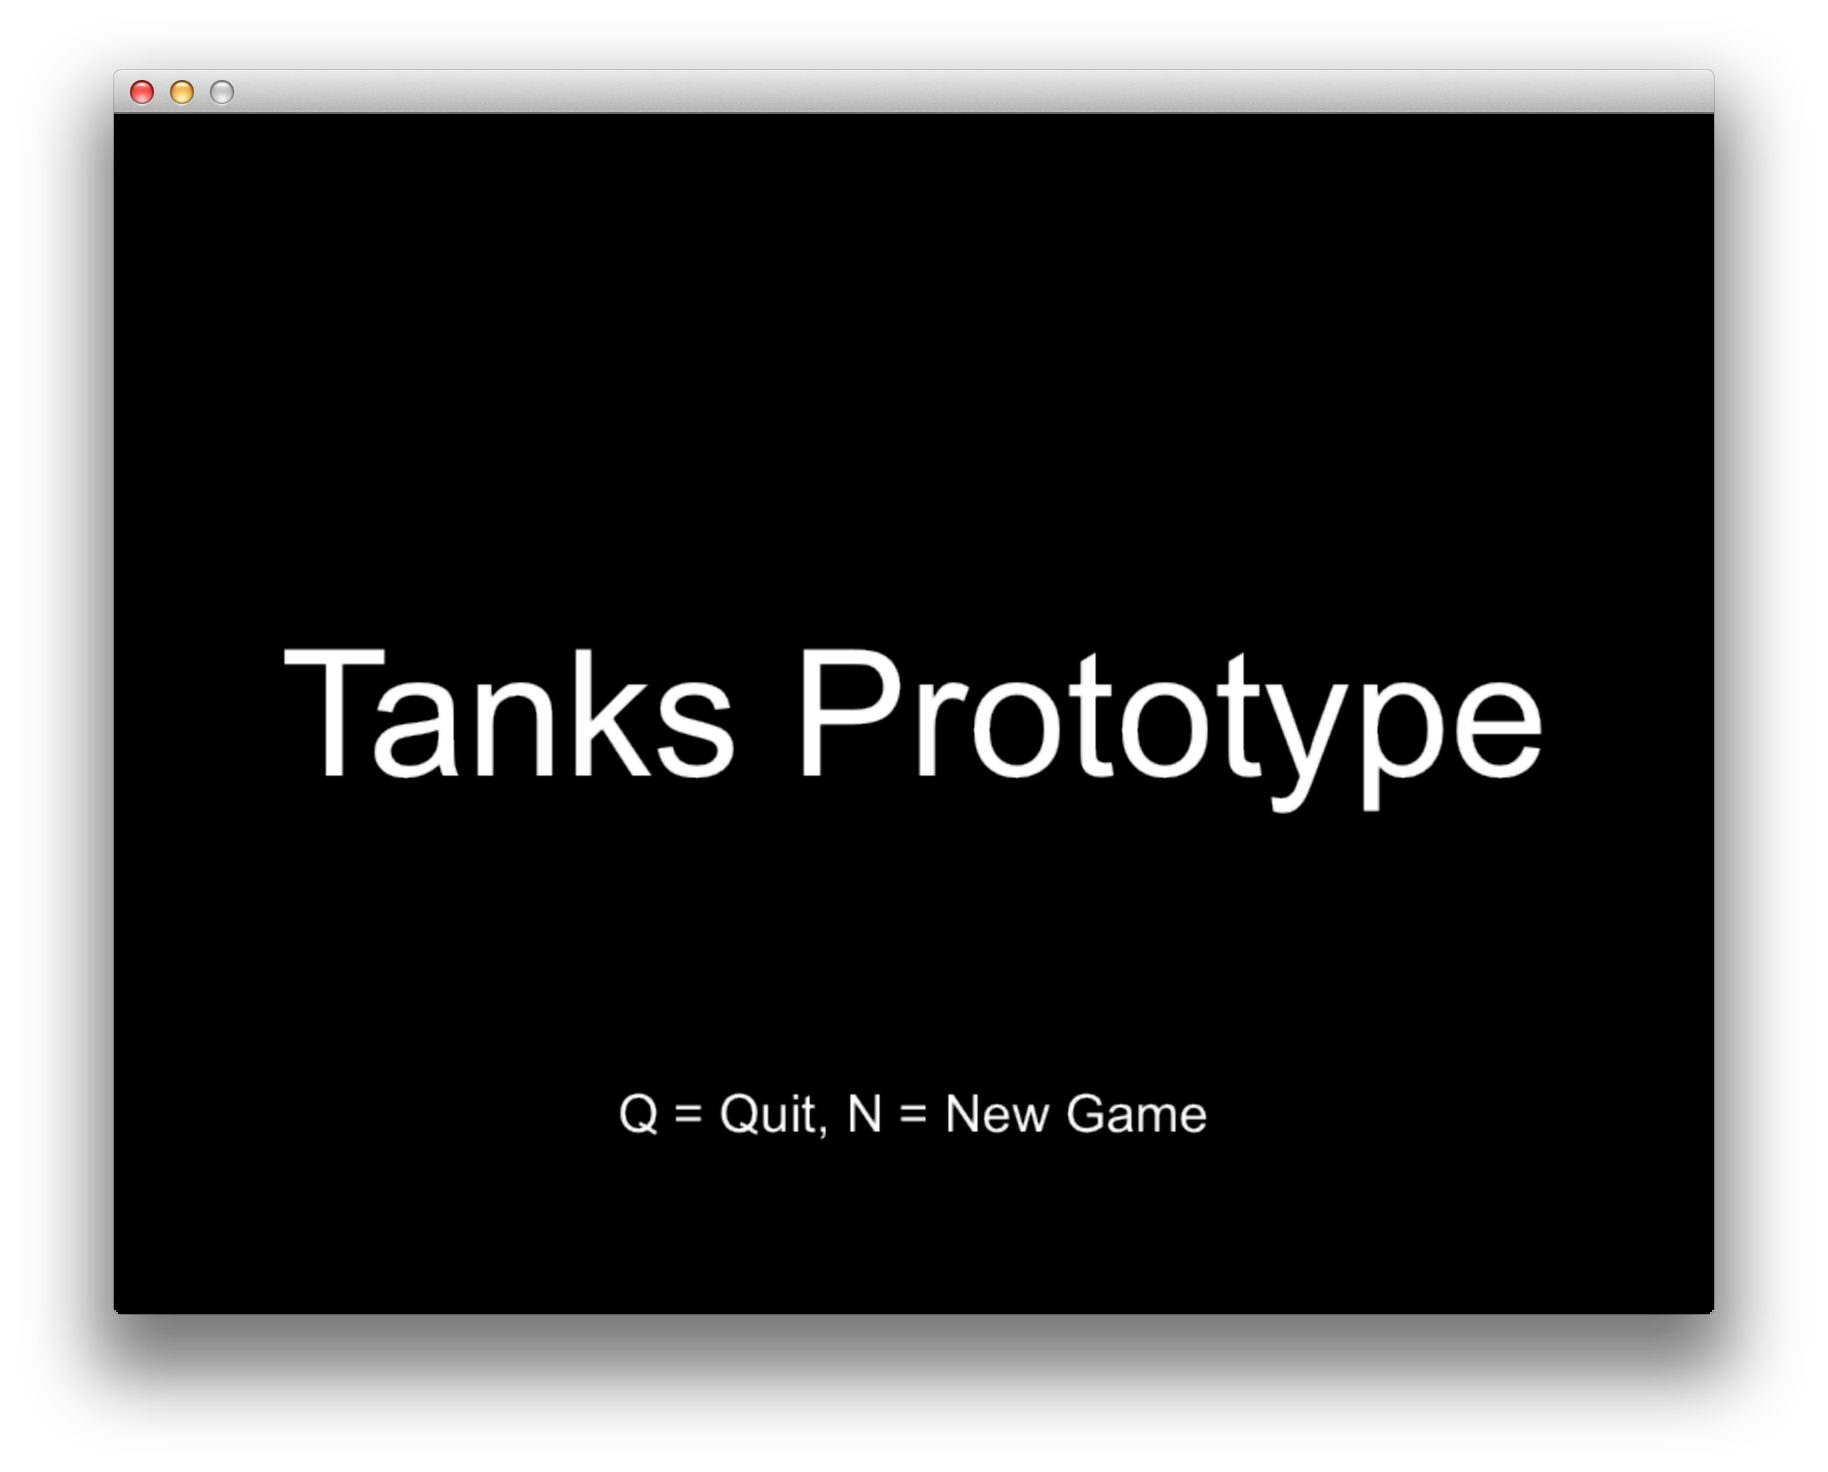 Tanks Prototype menu